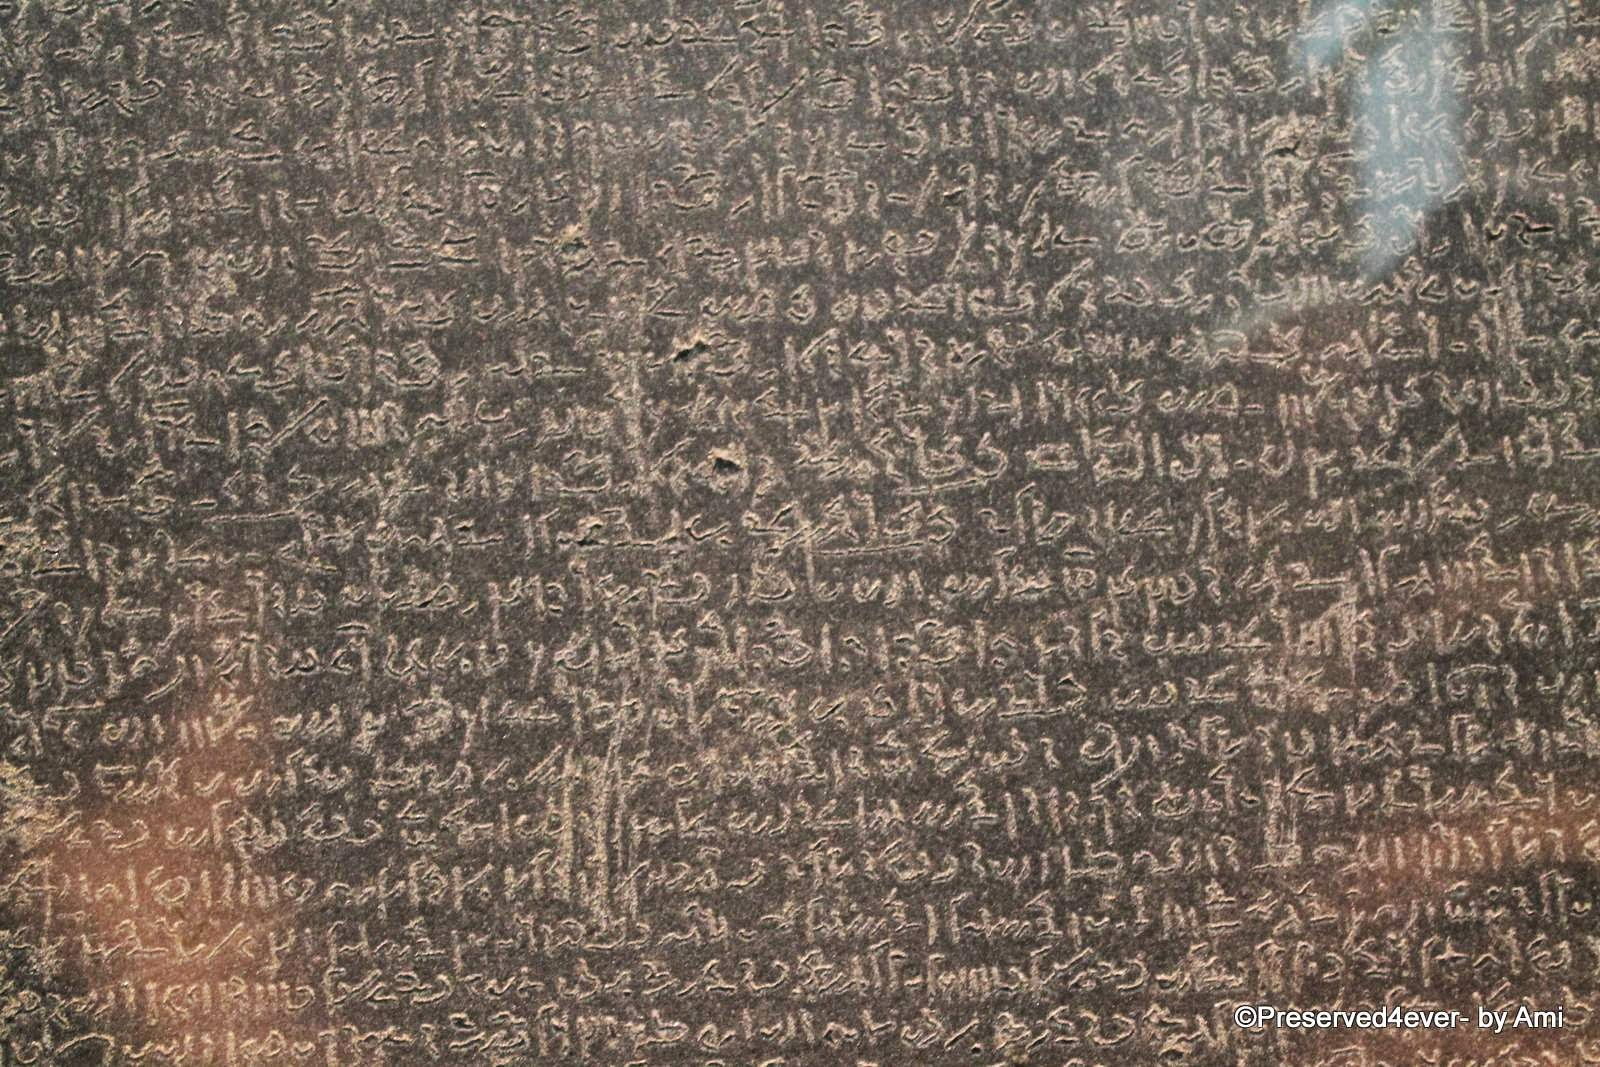 Inscriptions from Close-up of the Rosetta Stone, British Museum